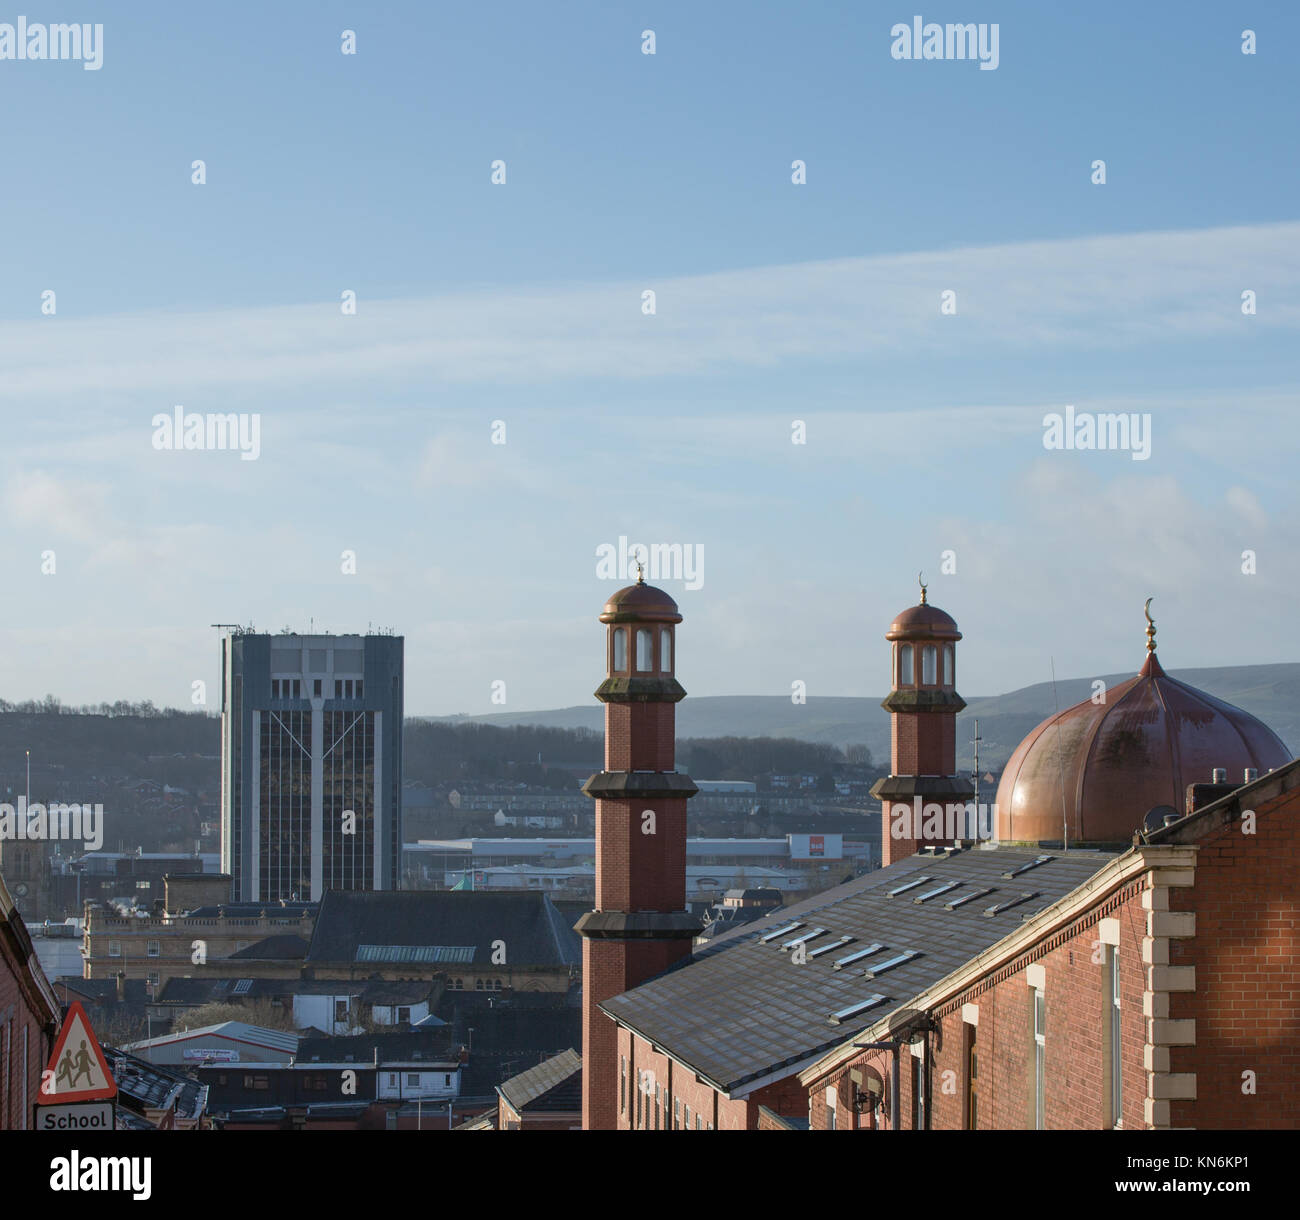 Mosque on Bold Street Blackburn set against the town hall with blackburn cathedral in the background - Stock Image